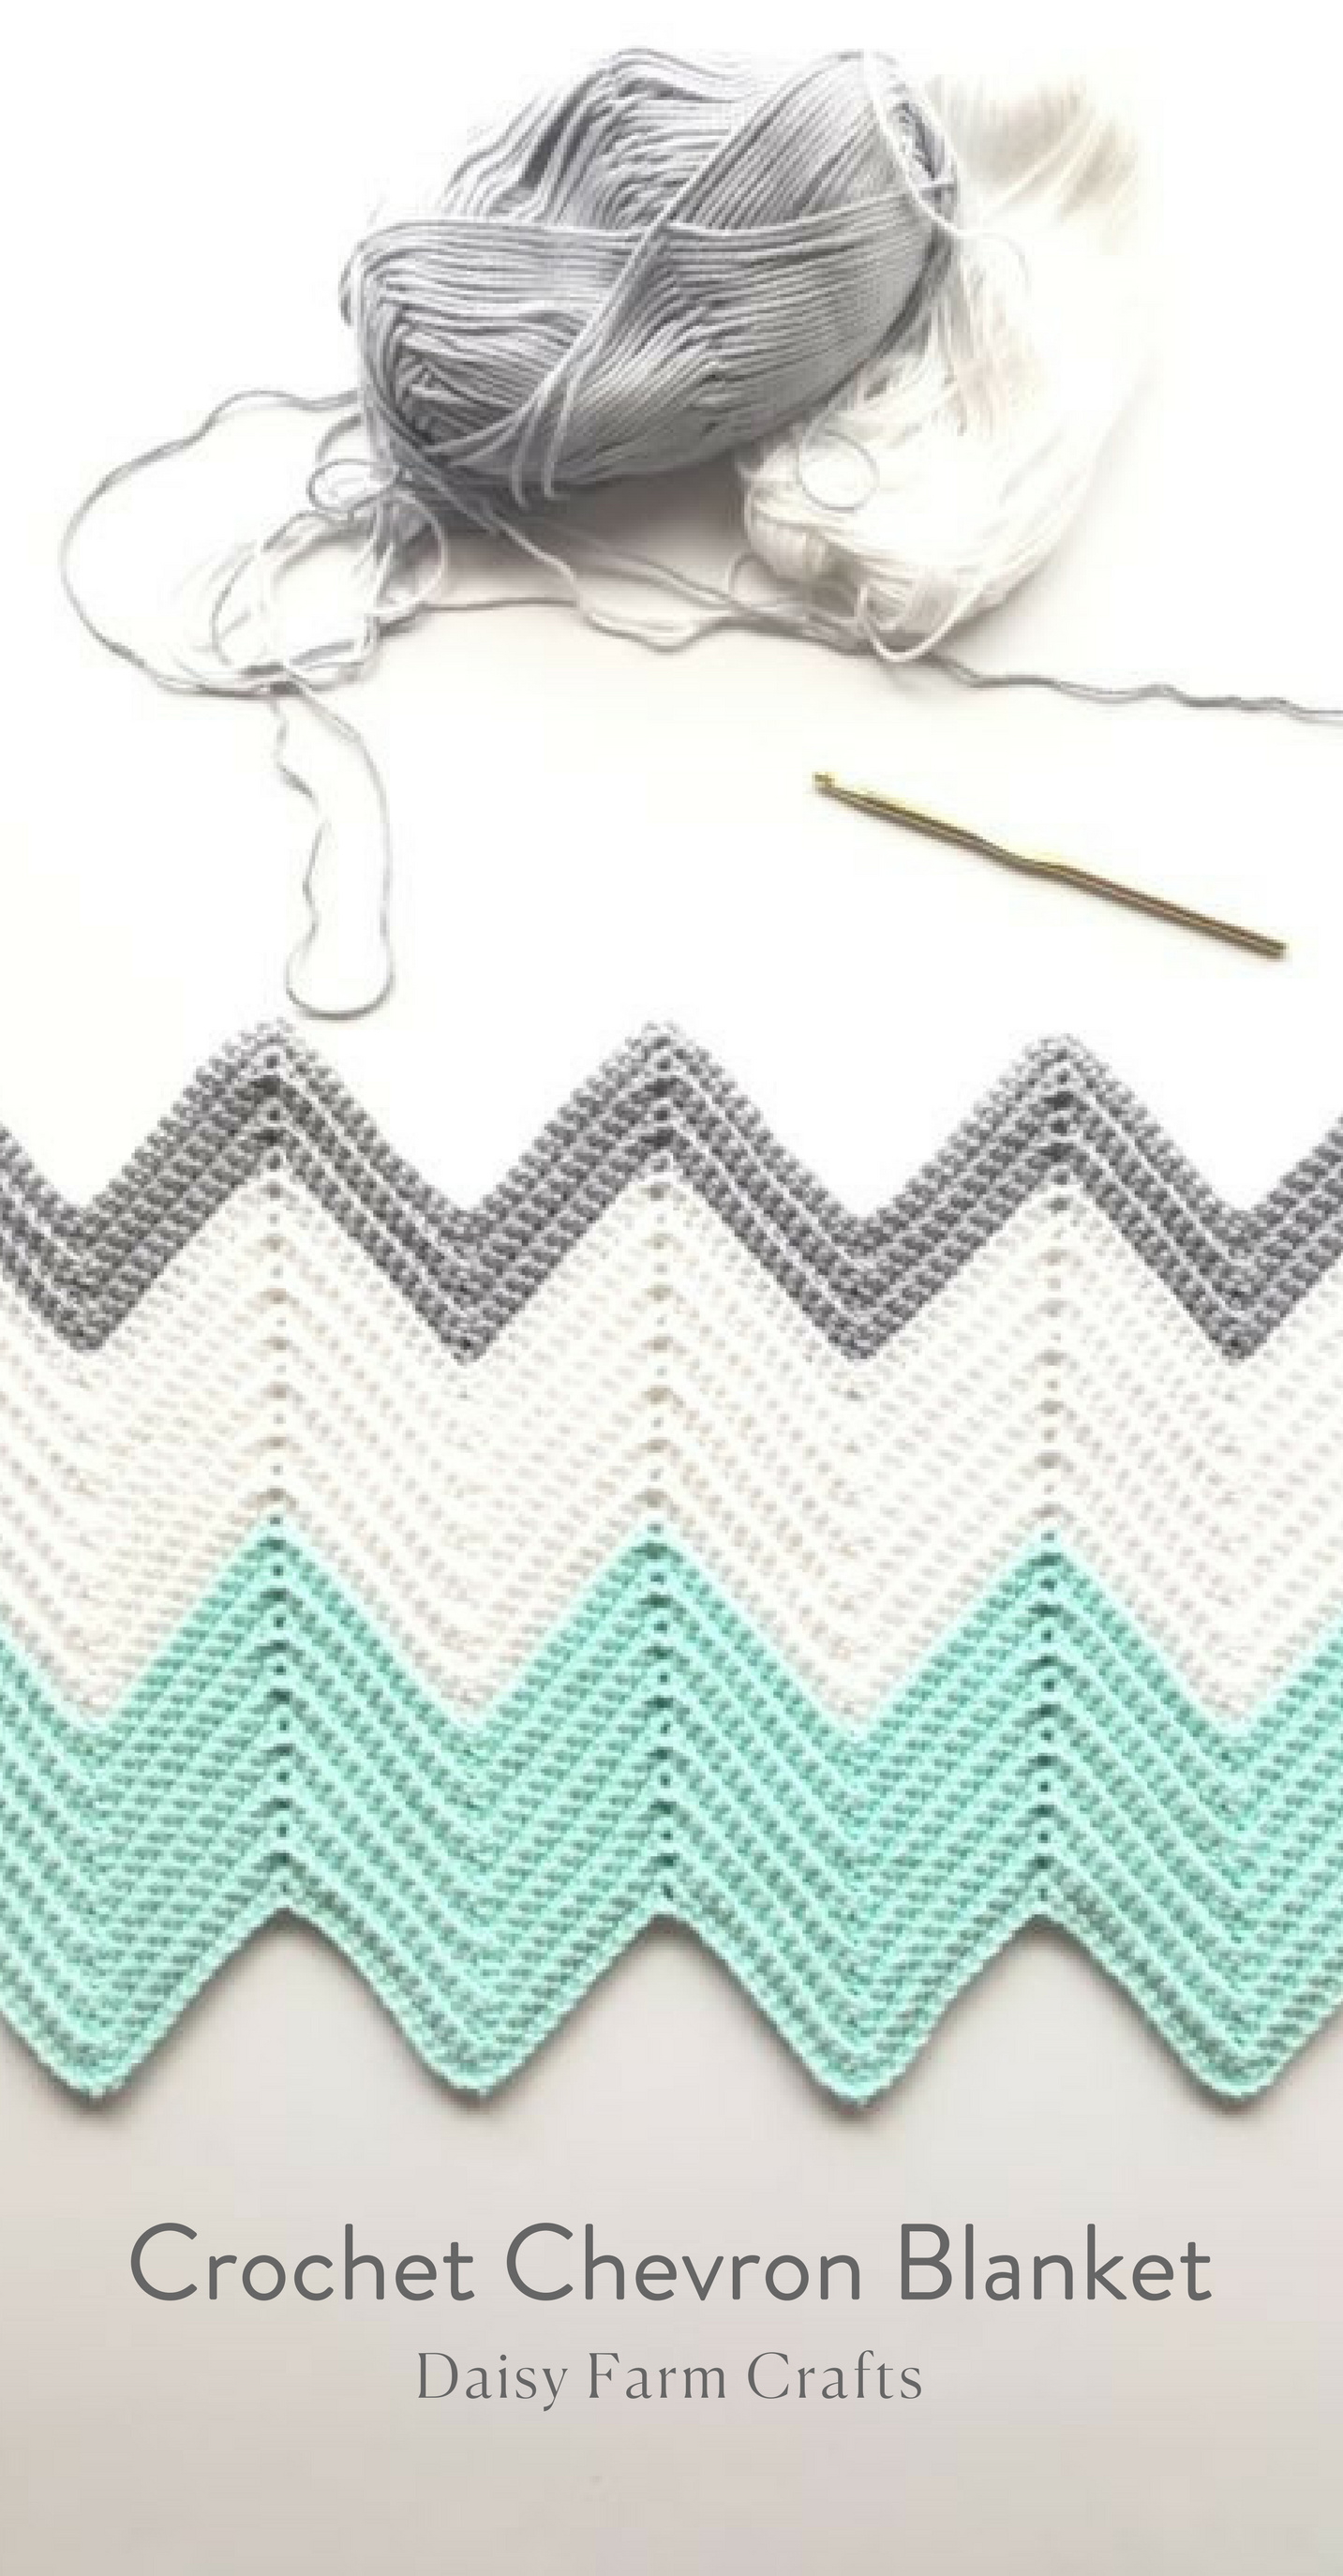 Free Pattern - Crochet Chevron Blanket | Crochet / hækle | Pinterest ...